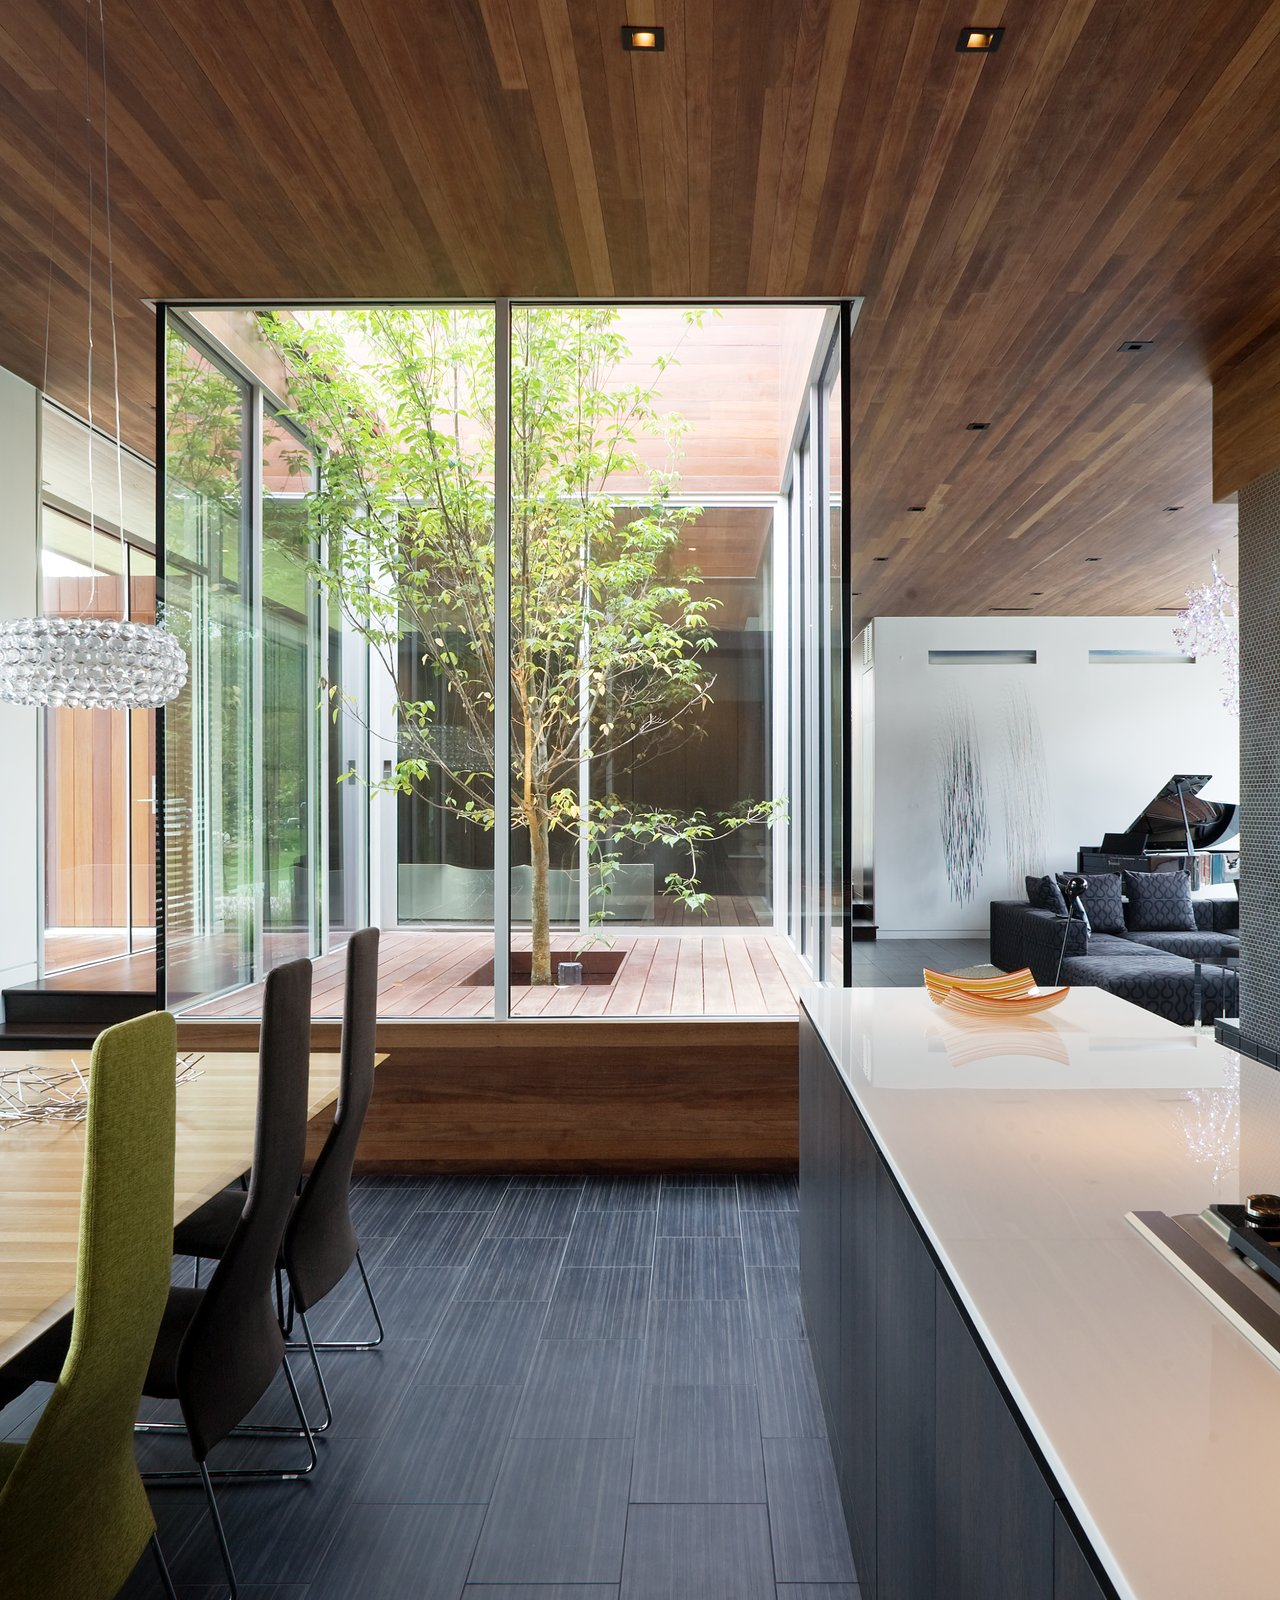 An interior glass courtyard anchors the central living areas—the dining room, foyer, living room, and kitchen all circulate a living tree. This was installed for natural light and to reinforce a connection between the indoors and outdoors. A Bold Home Creatively Combines Curves and Modern Lines - Photo 3 of 10